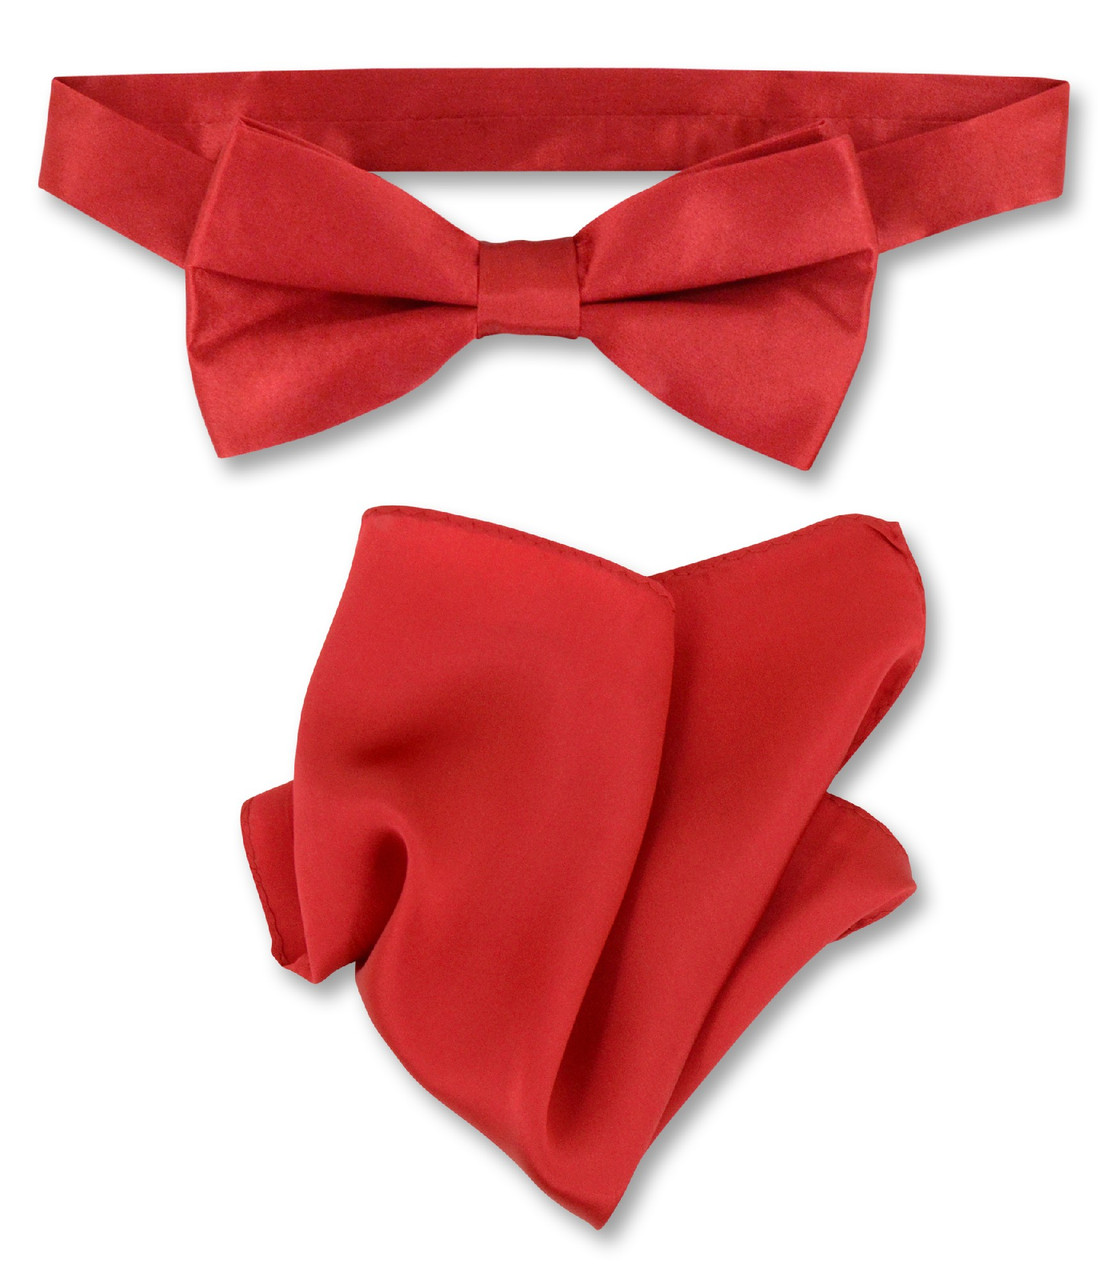 424e5ac629f2 Rose Red Bow Tie And Handkerchief Set | Silk BowTie Hanky Set